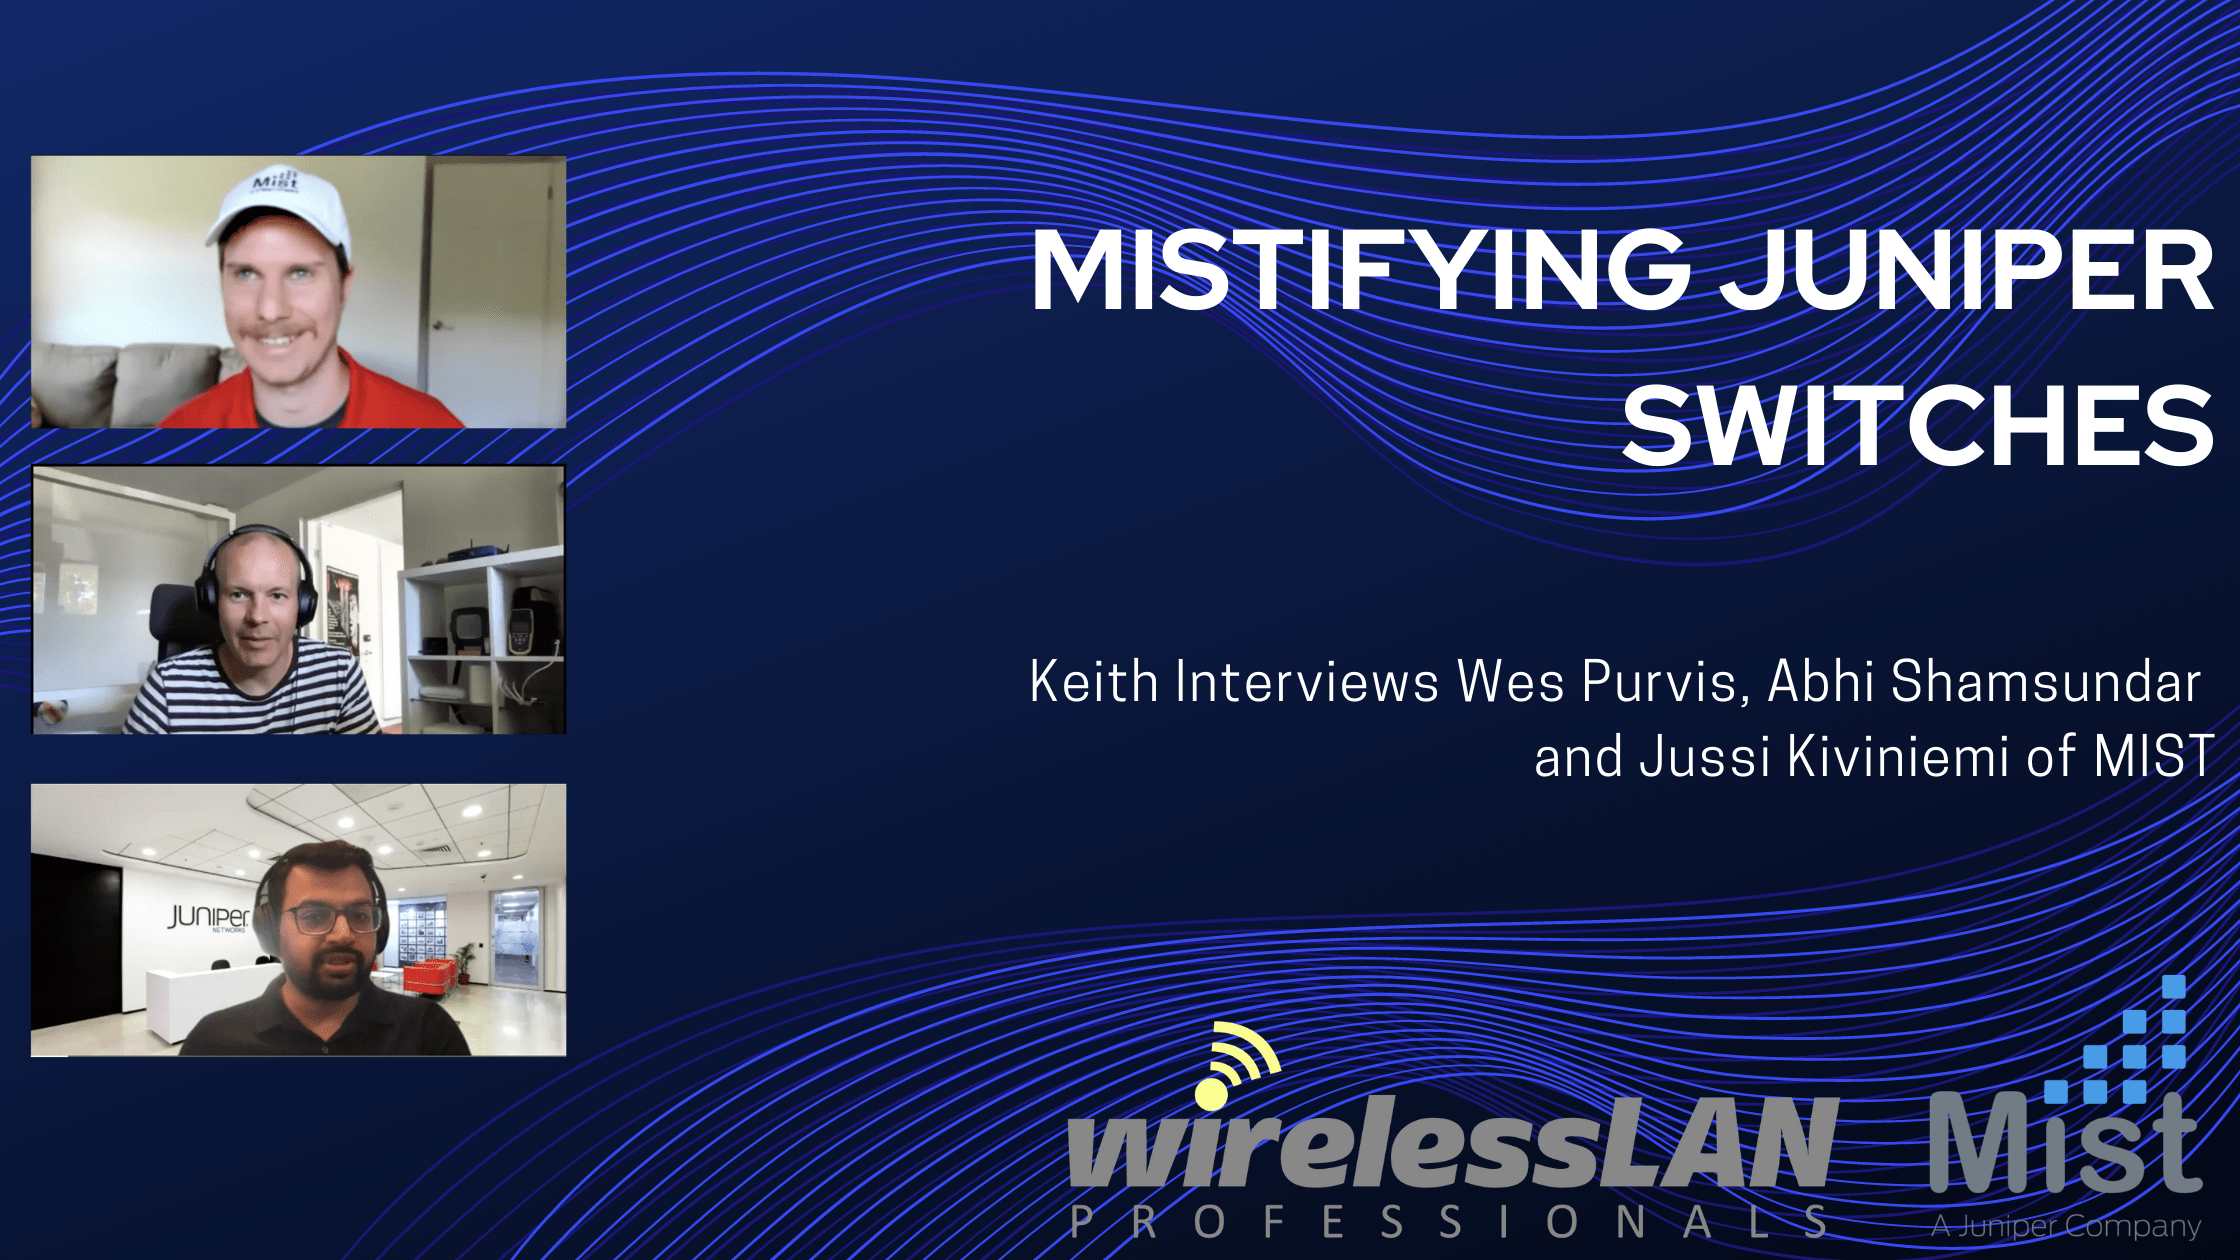 [PODCAST] Mistifying Juniper Switches